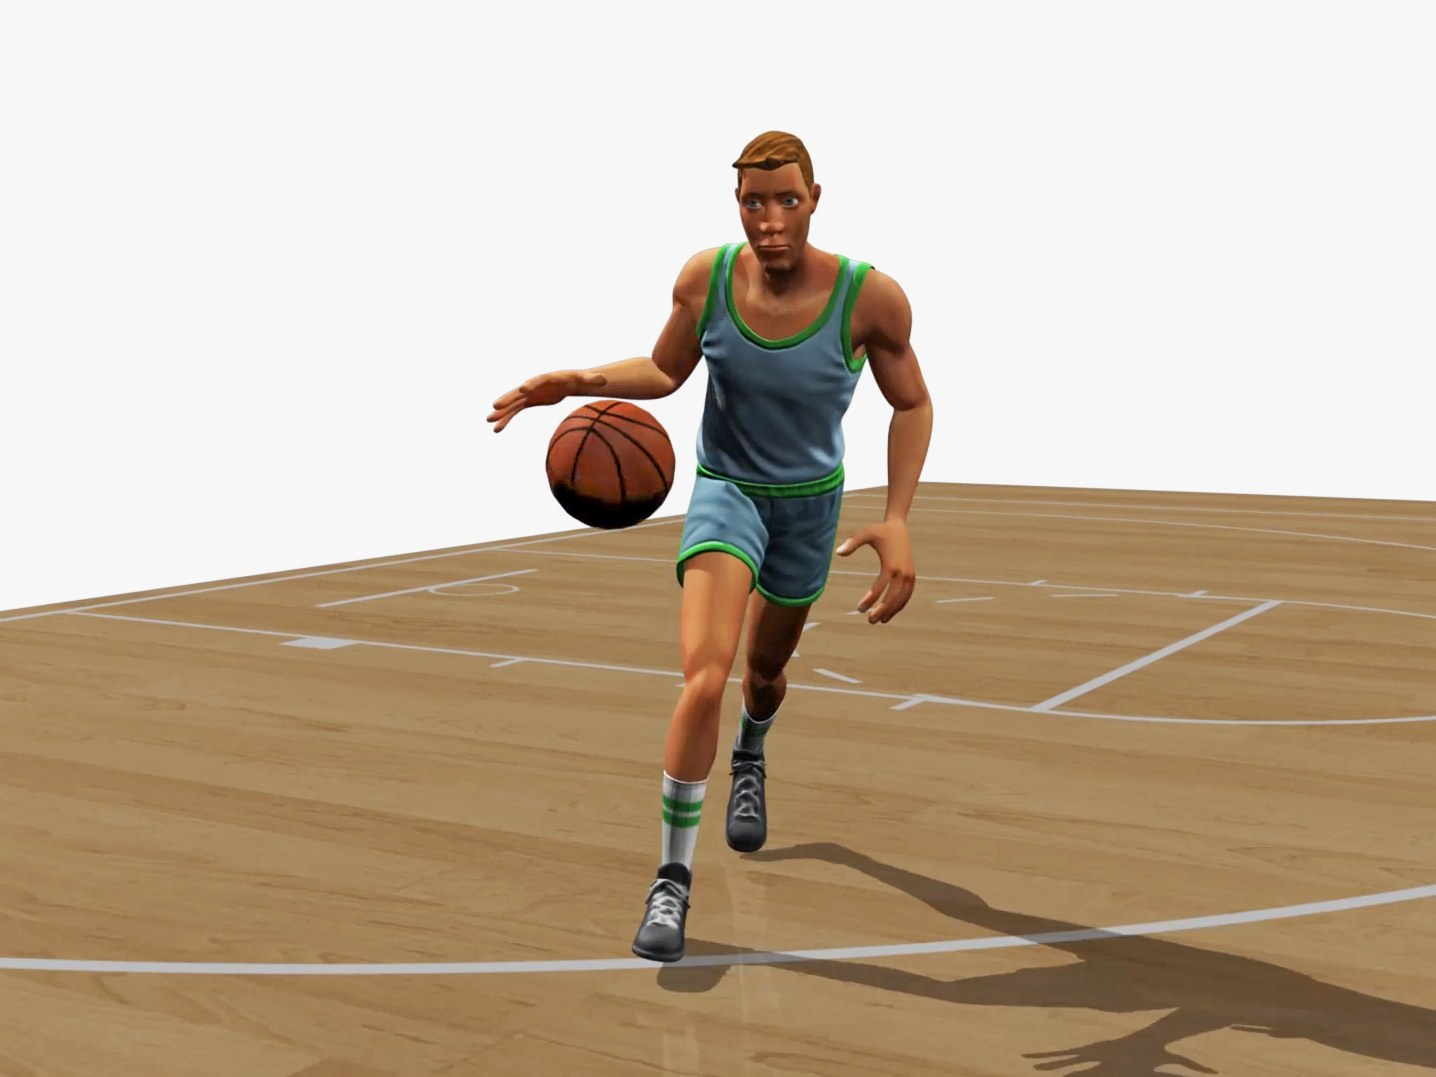 watch+a+sporty+ai+teach+itself+to+dribble+better+than+you